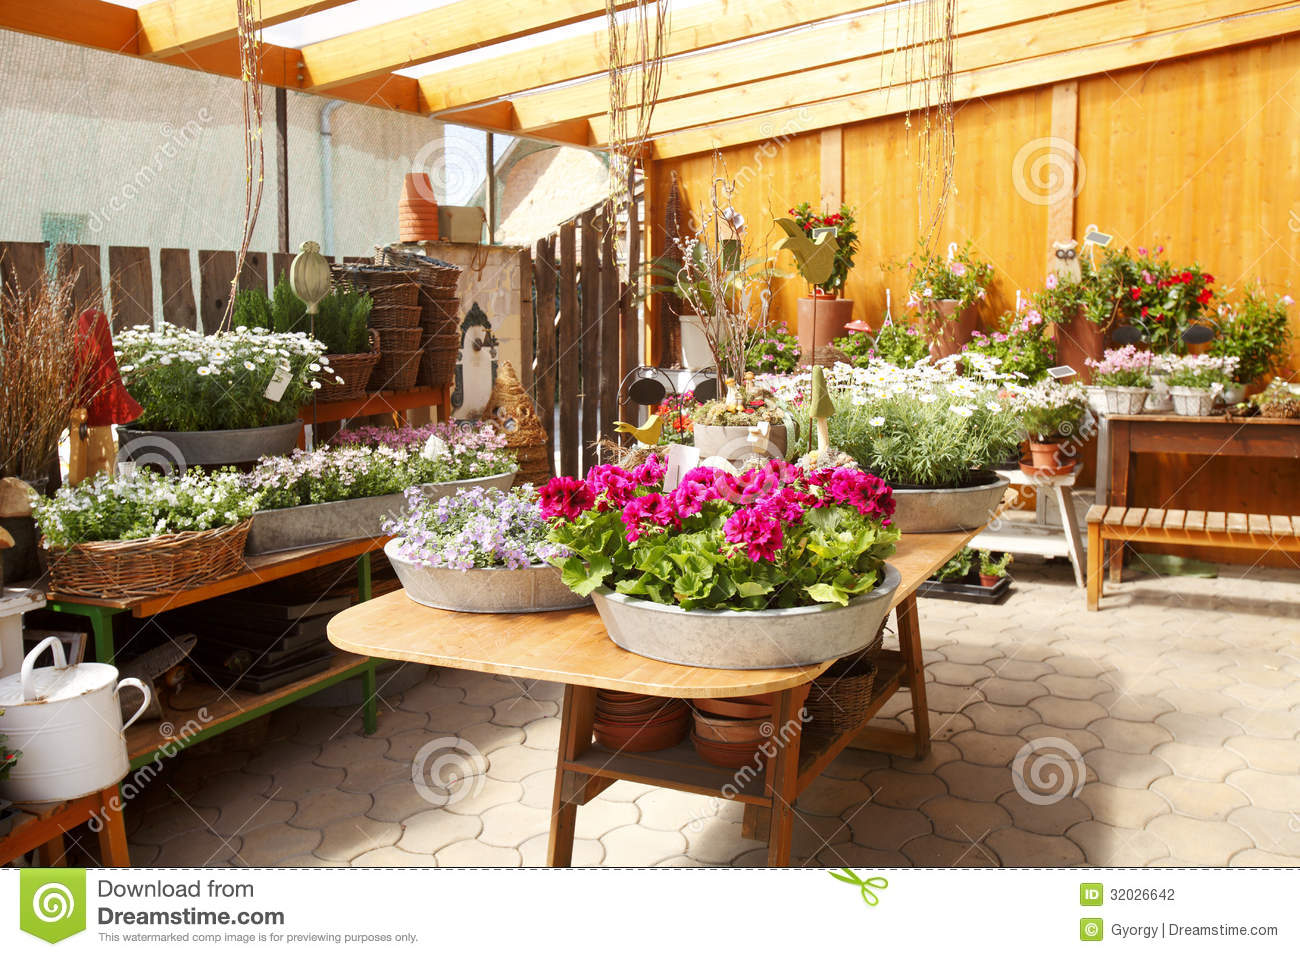 Flower Shop Interior Stock Photo Image Of Florist Image 32026642